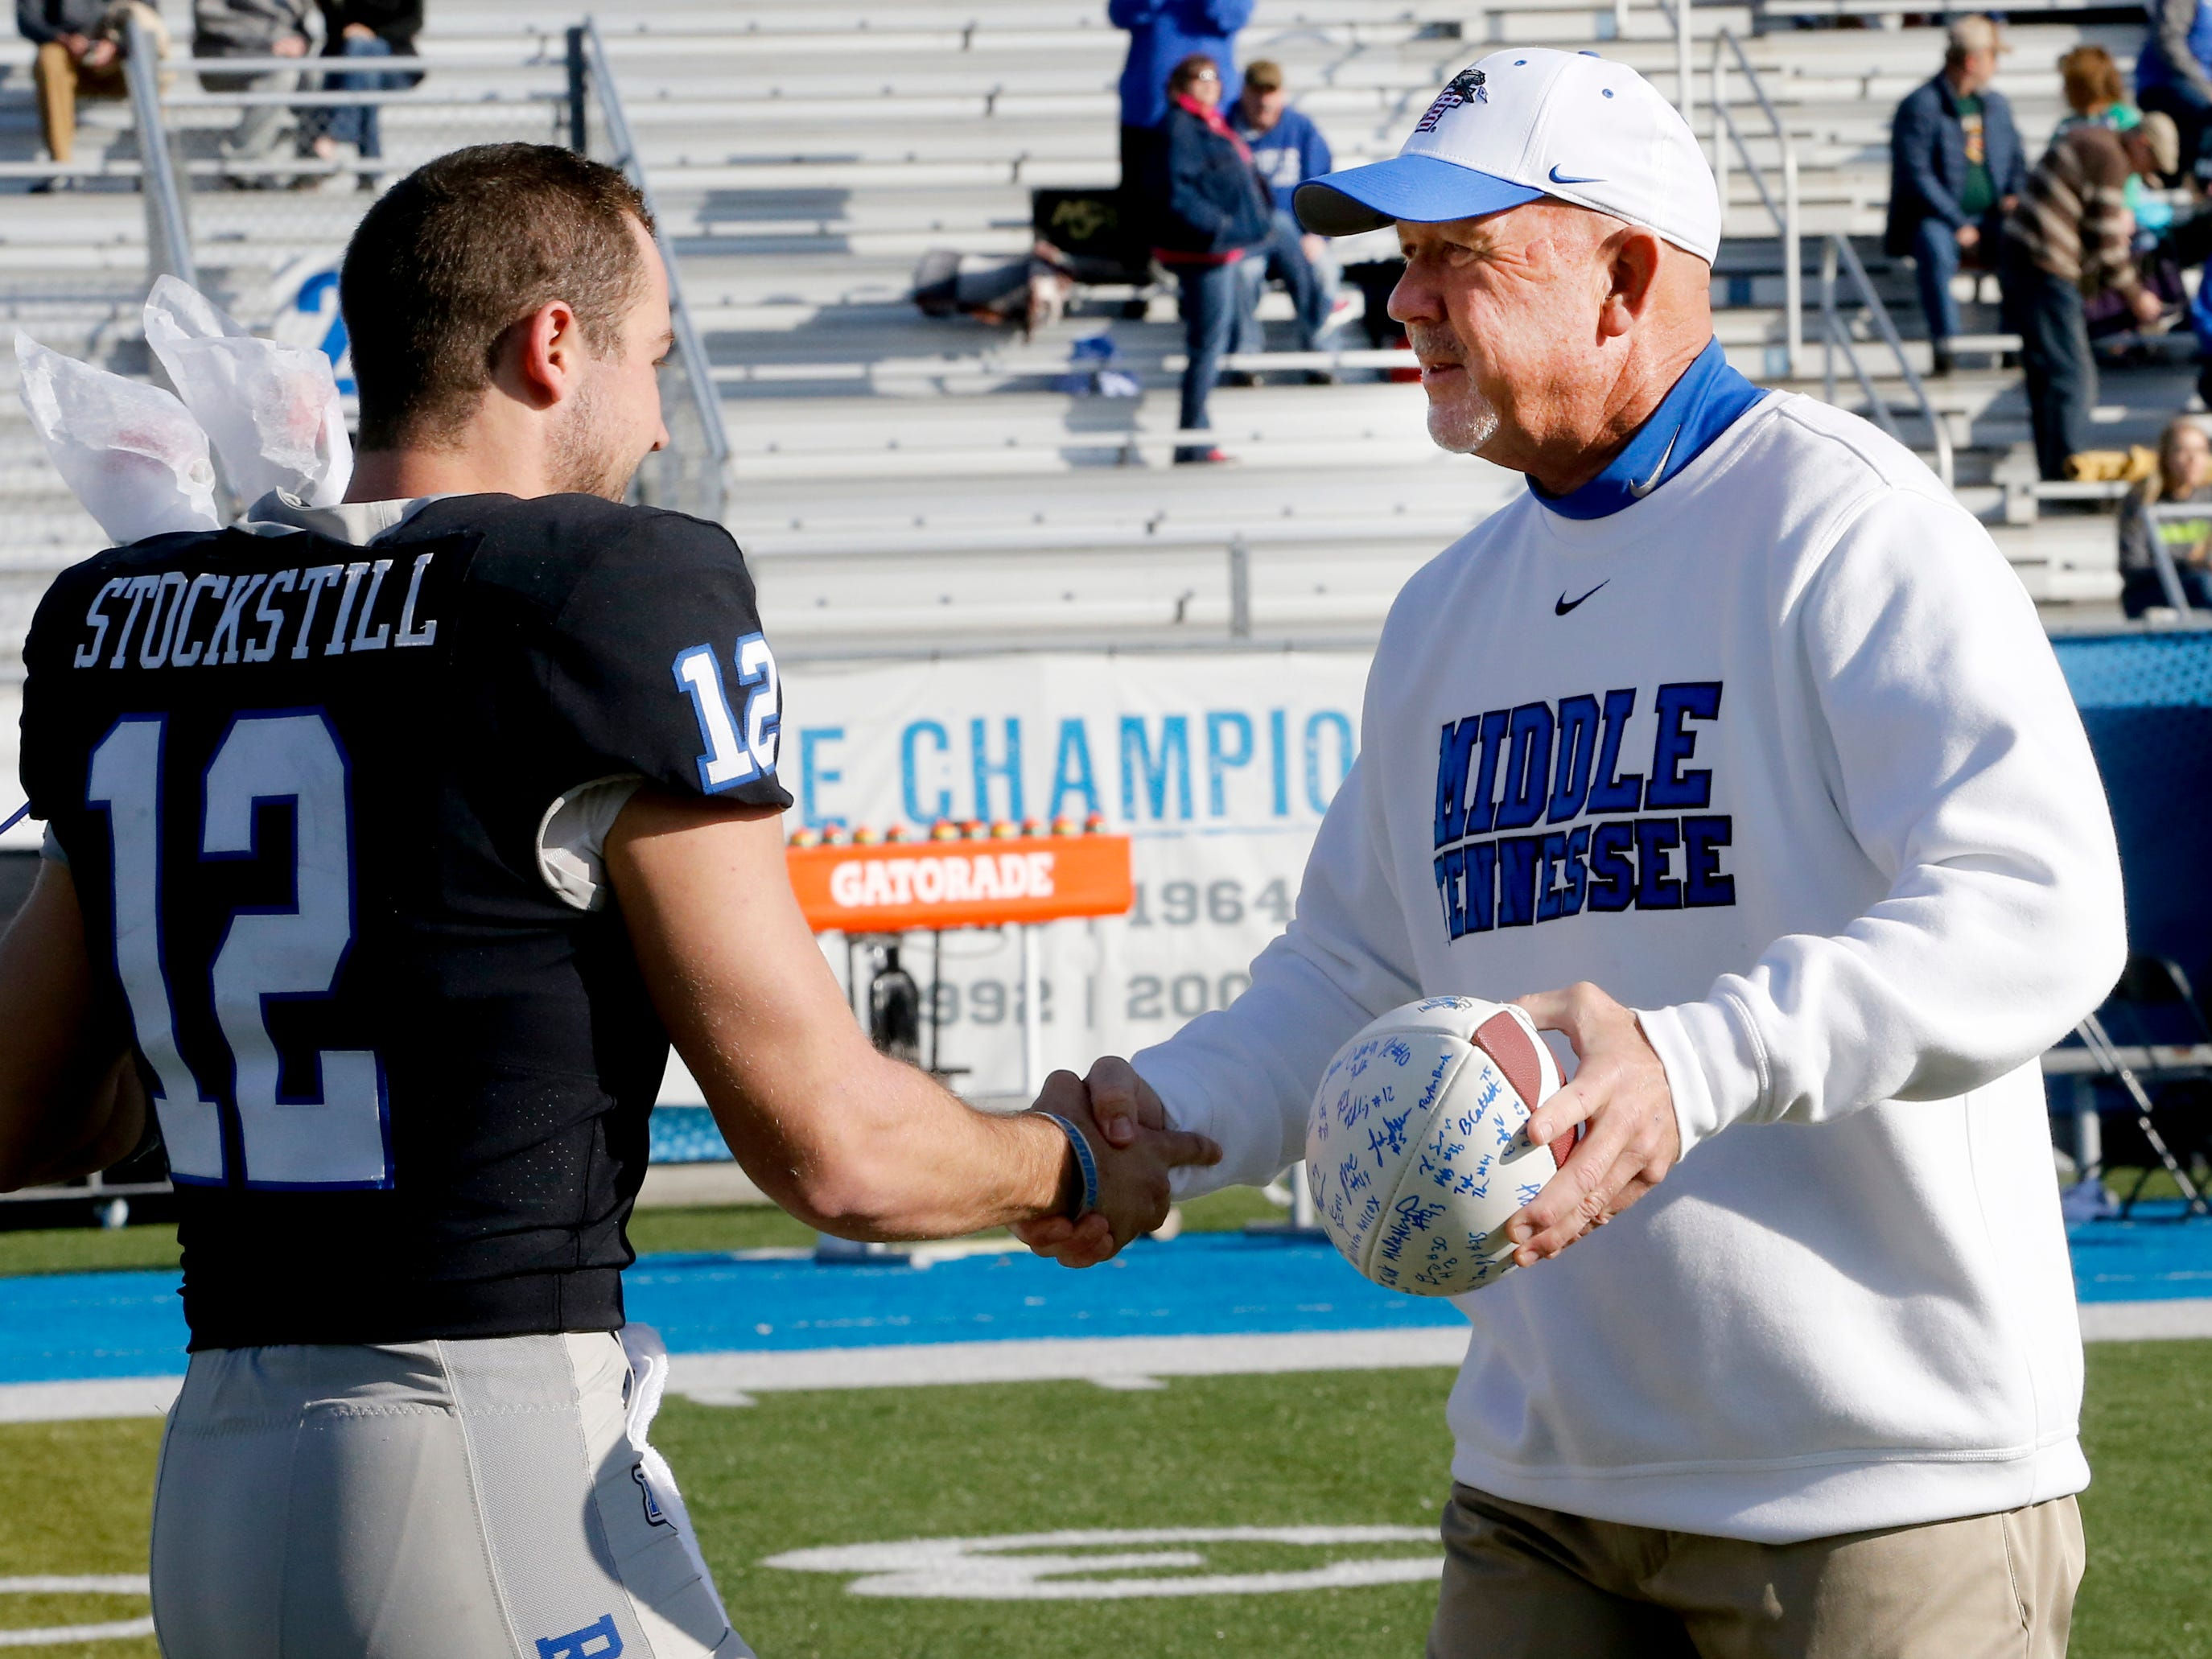 MTSU head football coach Rick Stockstill greats his son and MTSU quarterback Brent Stockstill as Brent Stockstill is honored with the other senior football players on Senior Day, before the start of the game against UAB at MTSU, on Saturday, Sept. 29, 2018.